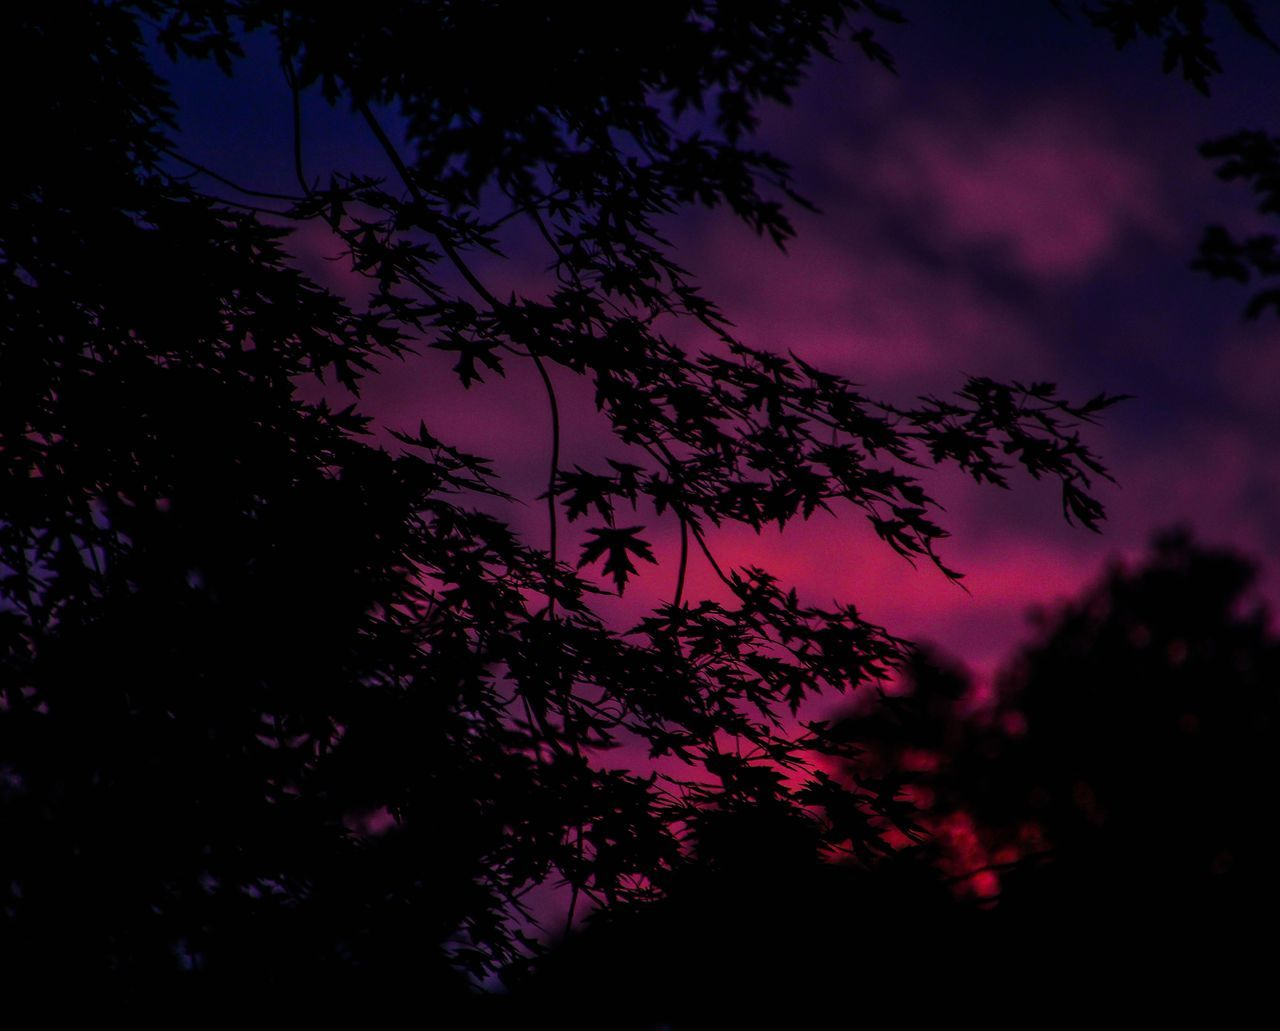 tree, nature, beauty in nature, no people, tranquility, sky, growth, low angle view, silhouette, outdoors, scenics, night, branch, scenery